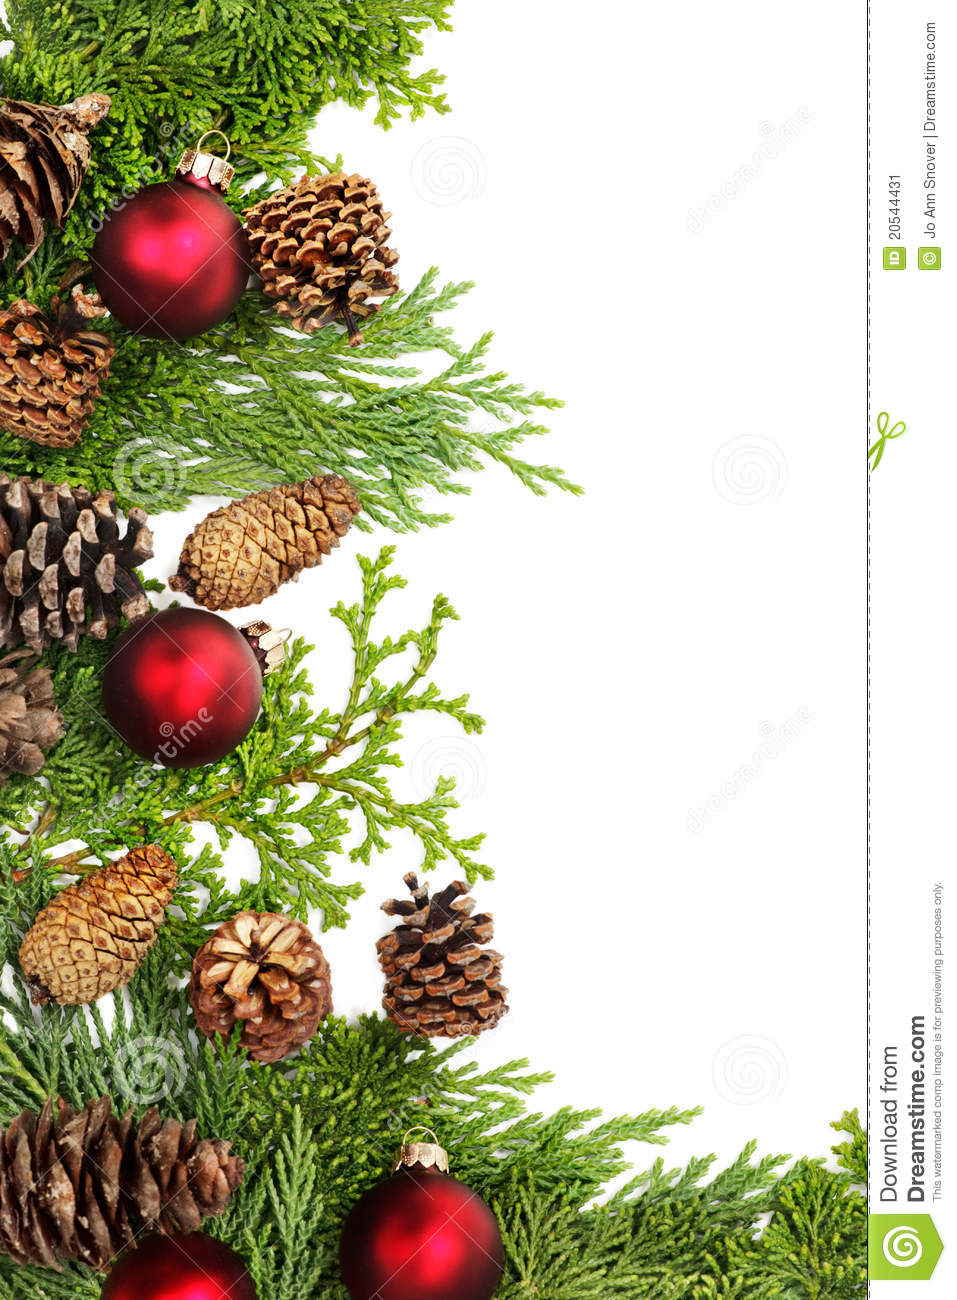 christmas foliage decorations border 20544431